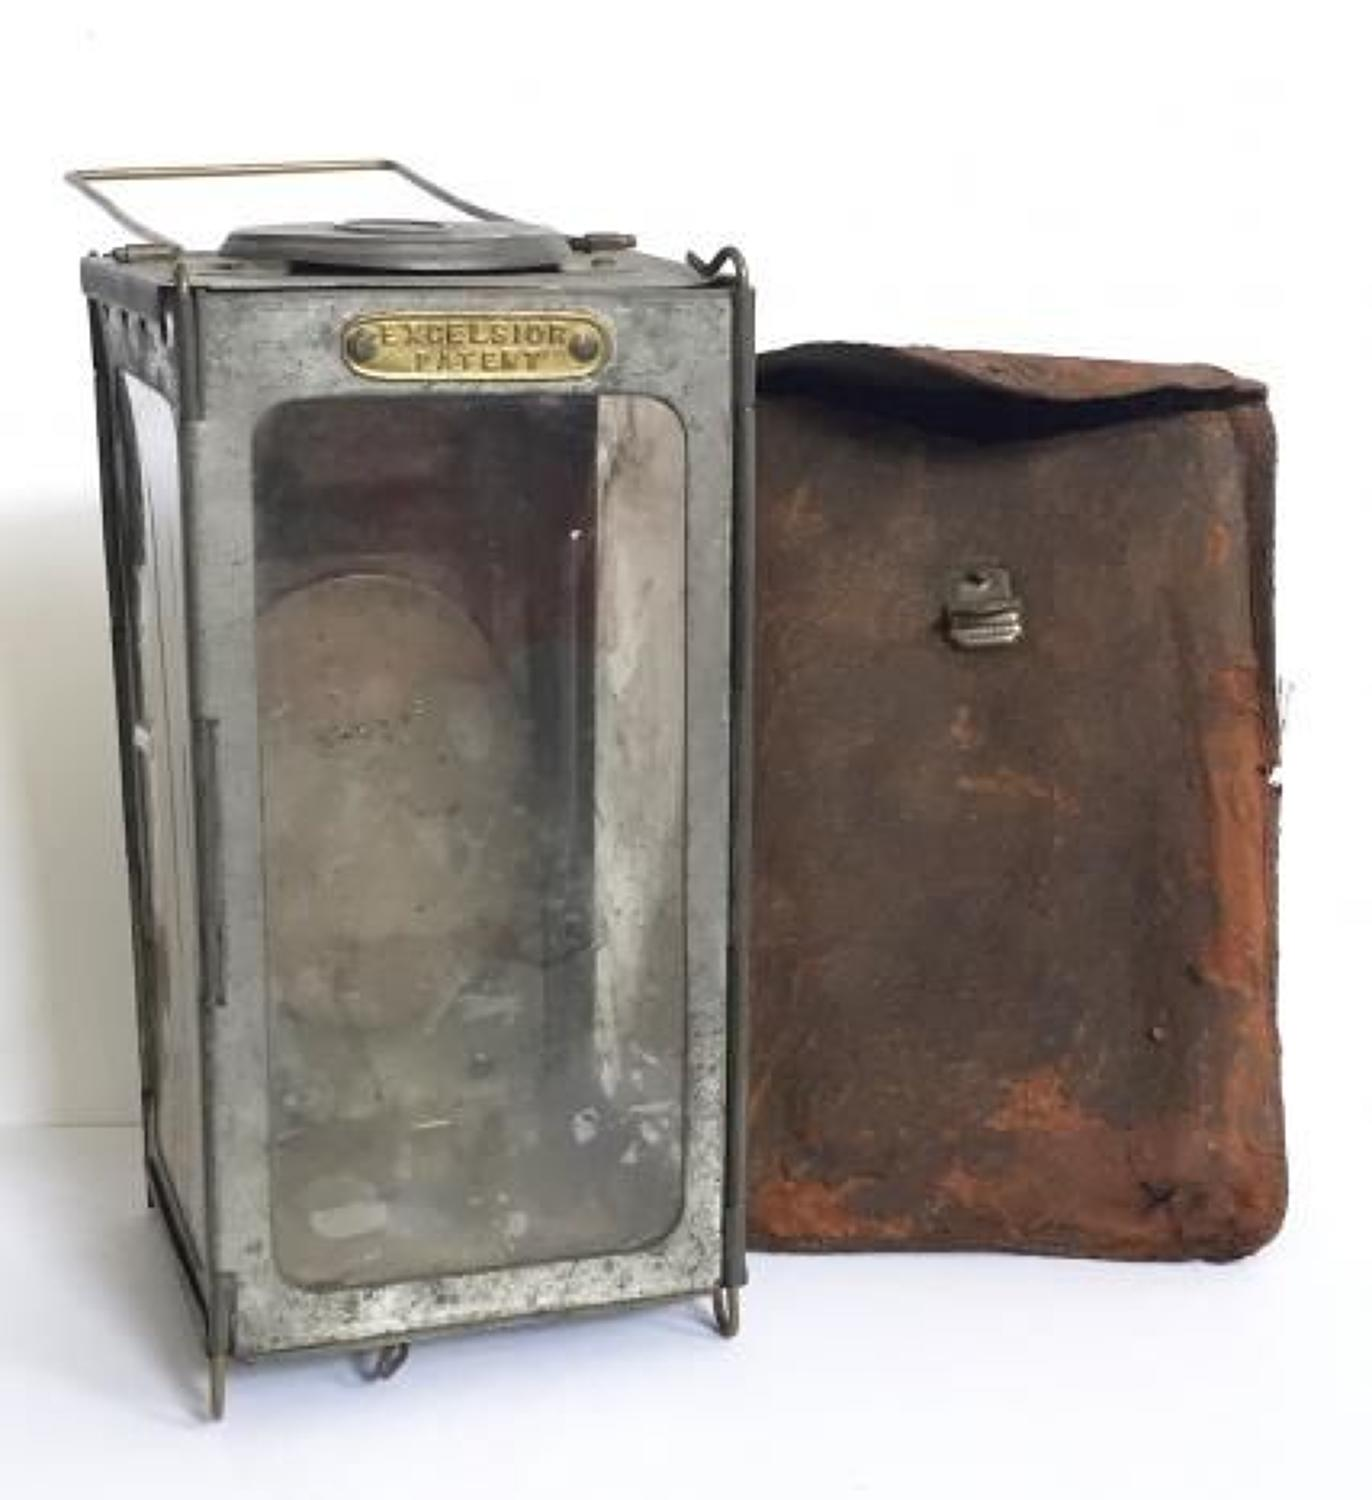 WW1 Period British Army Officer's Private Purchase Folding Lantern.